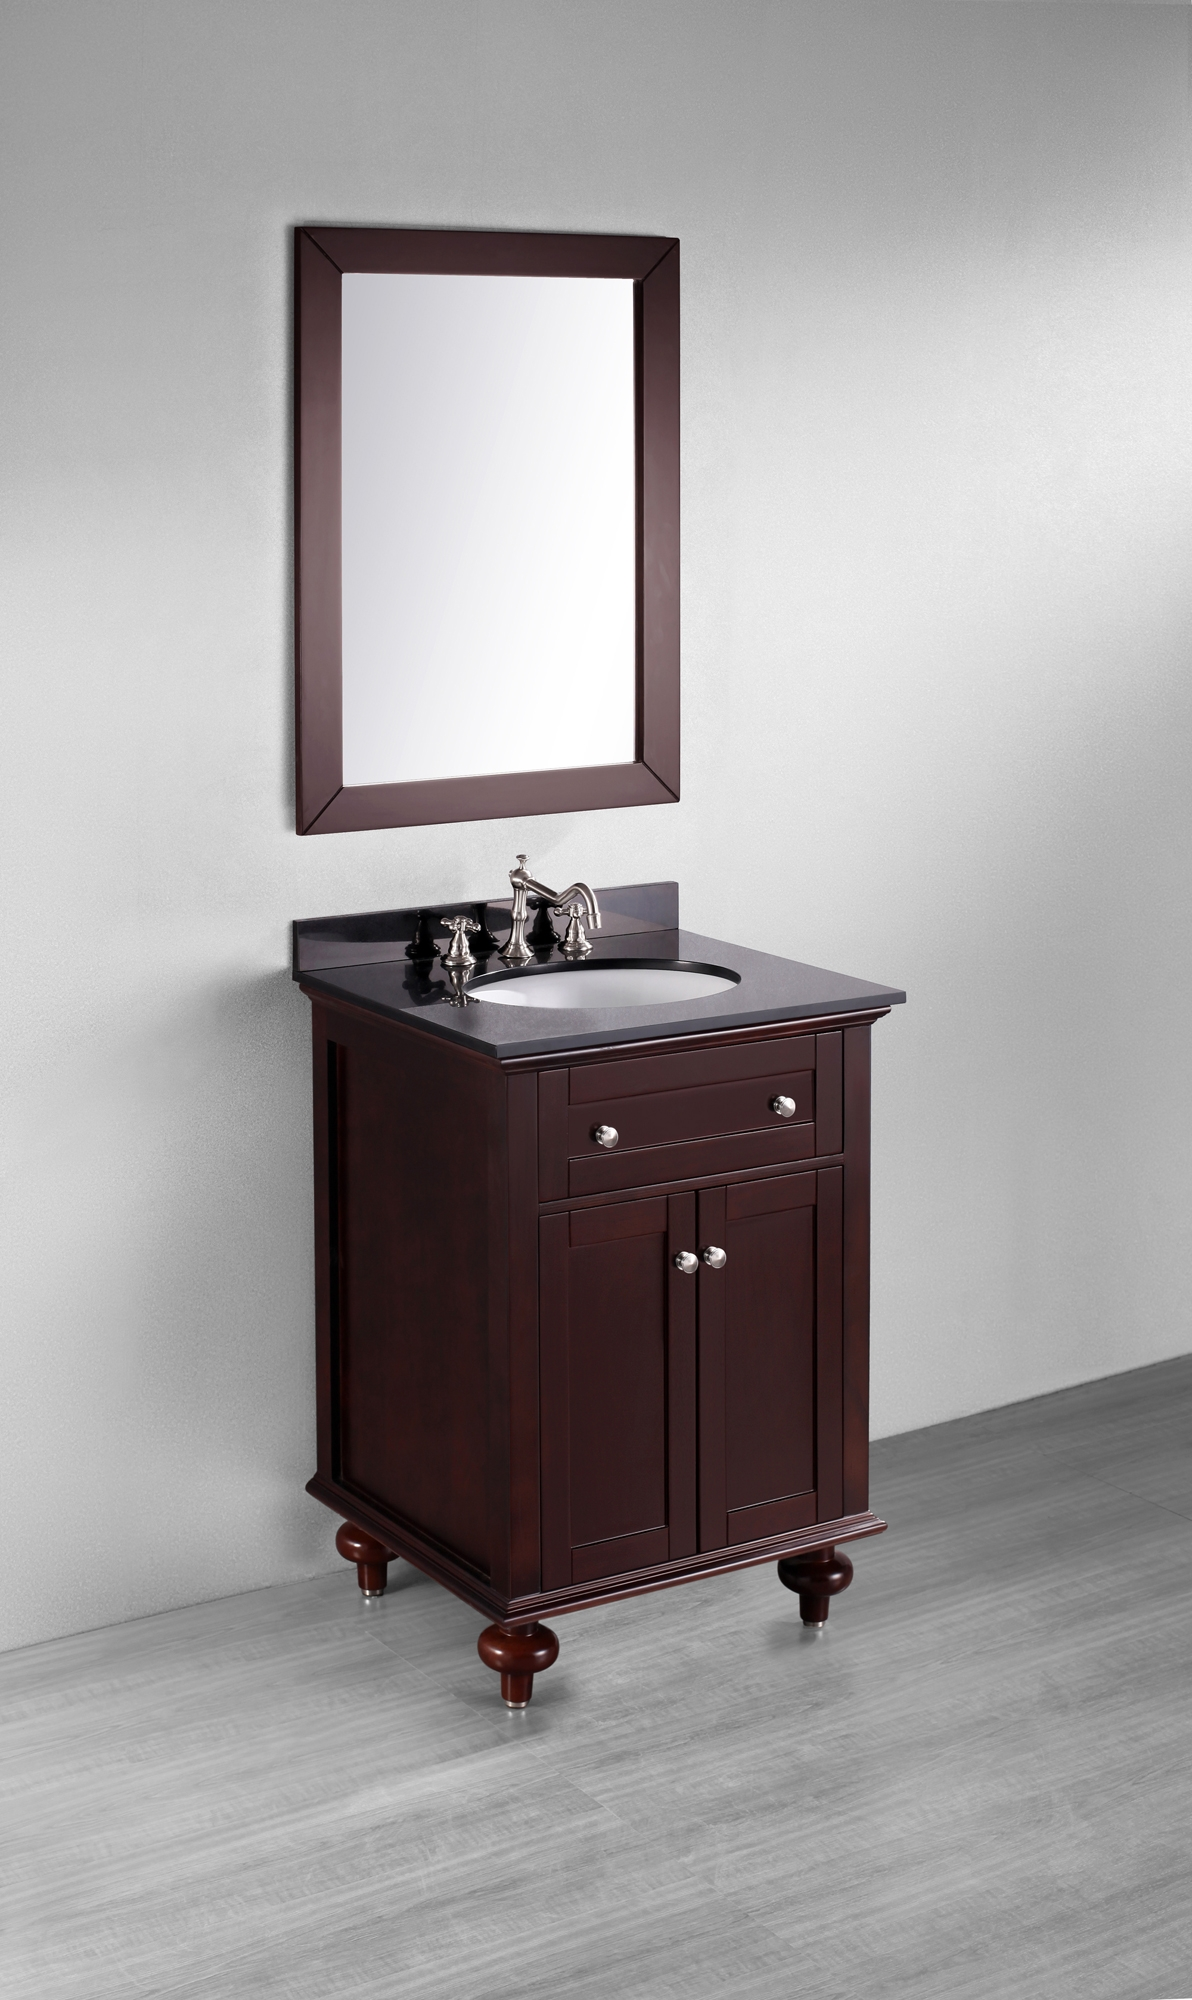 25 Inch Bathroom Vanity Sink